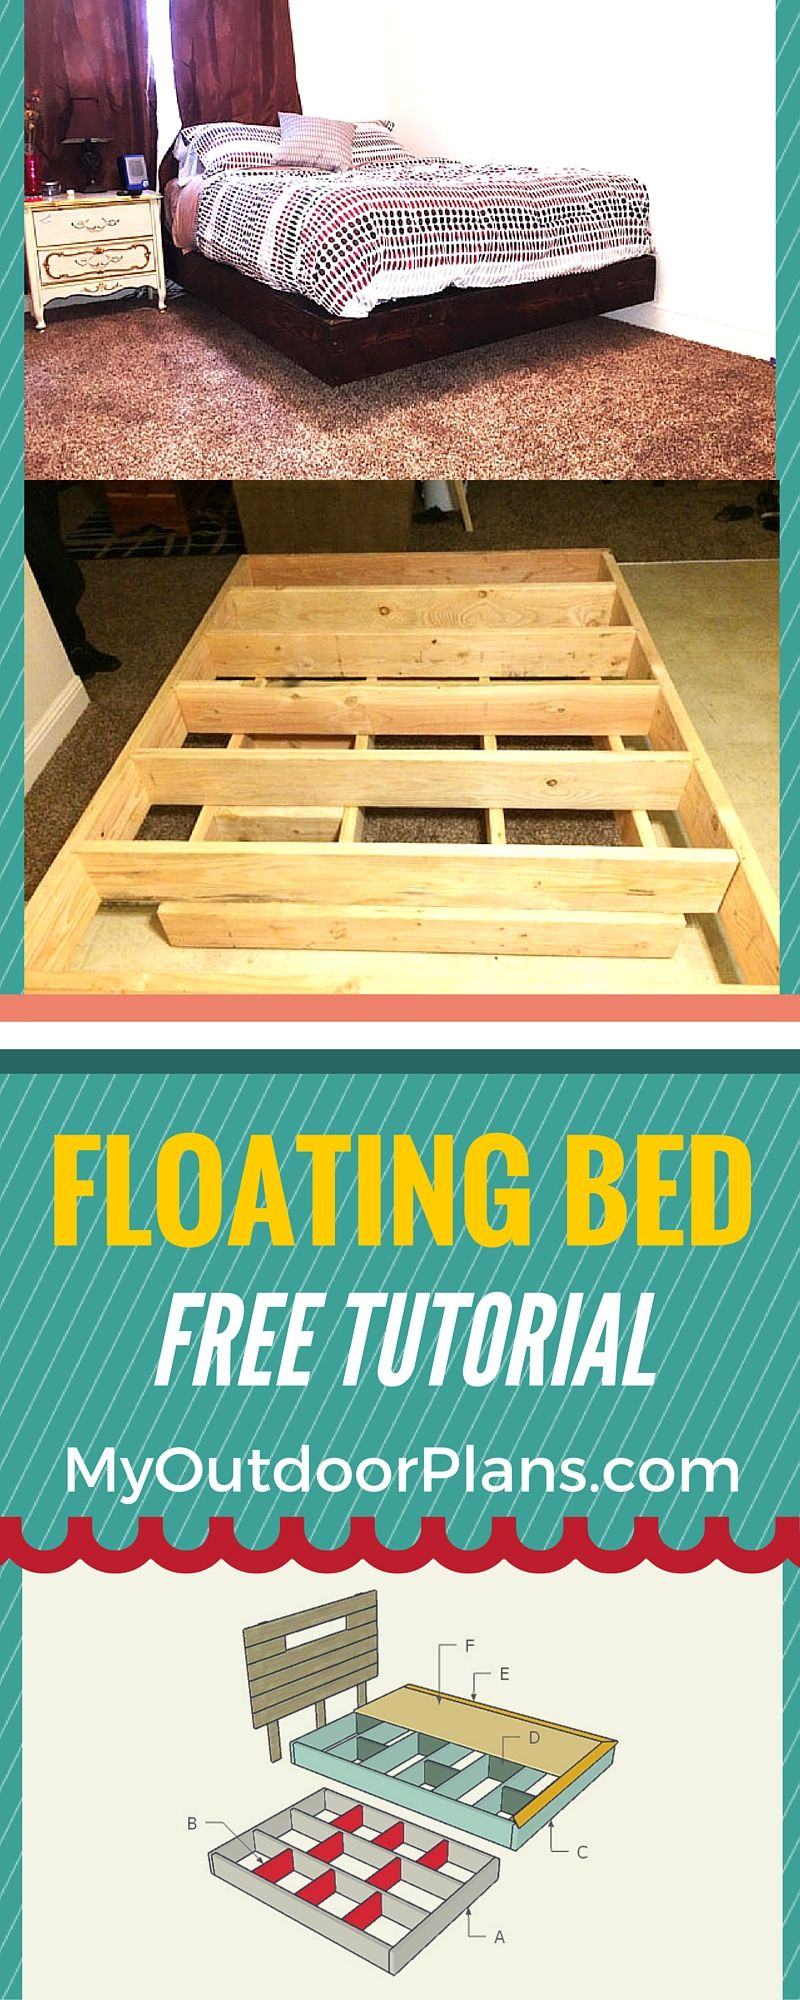 Floating Bed Frame Plans Myoutdoorplans Free Woodworking Plans And Projects Diy Shed Wooden Playhouse P Floating Bed Frame Floating Bed Floating Bed Diy